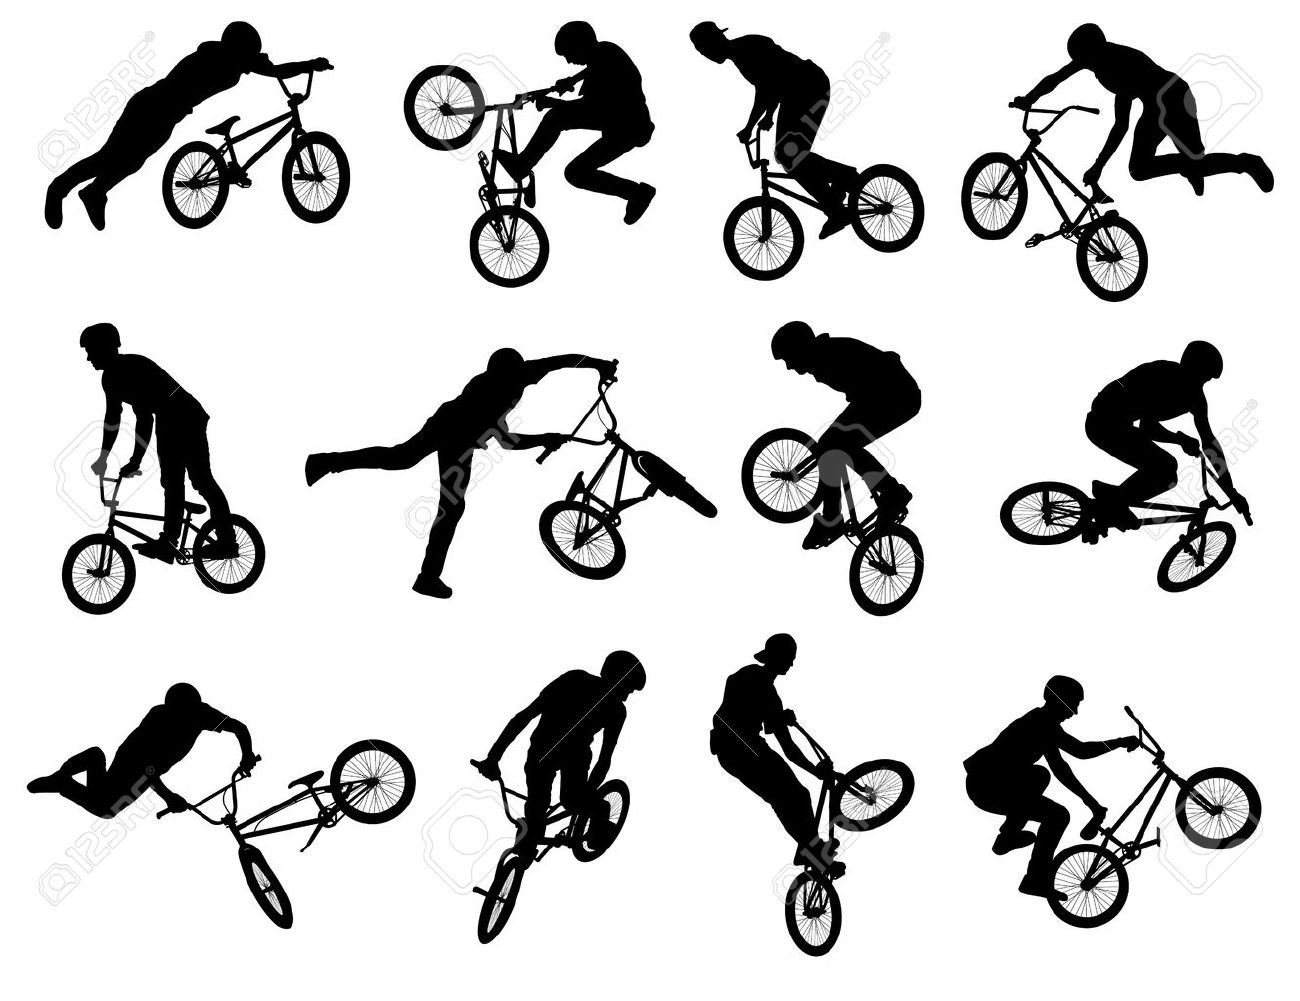 12 high quality silhouettes of BMX stunt cyclist - 21967731